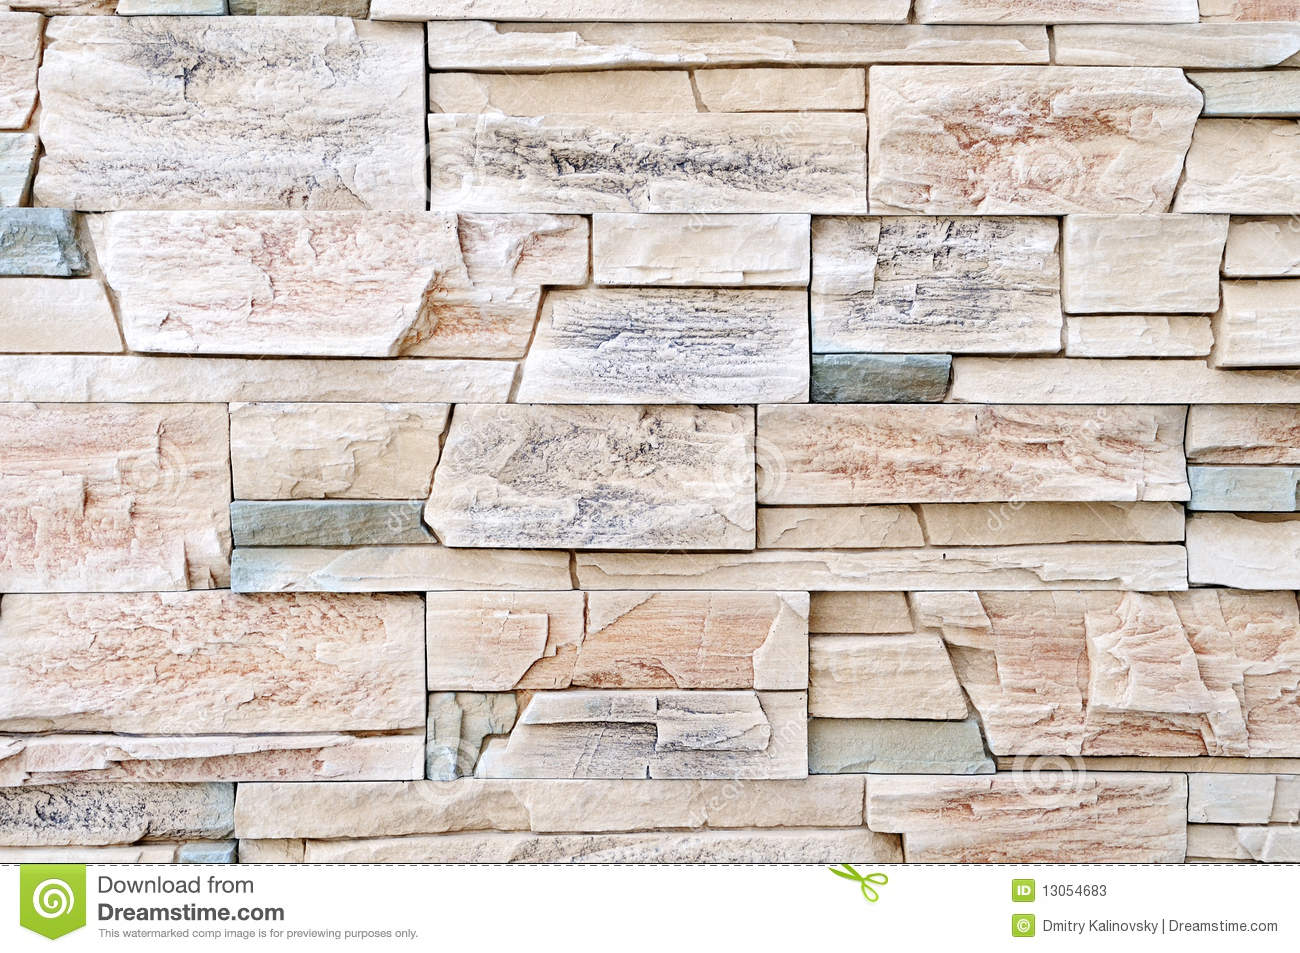 Brick stone wall material stock image image of natural 13054683 Materials for exterior walls